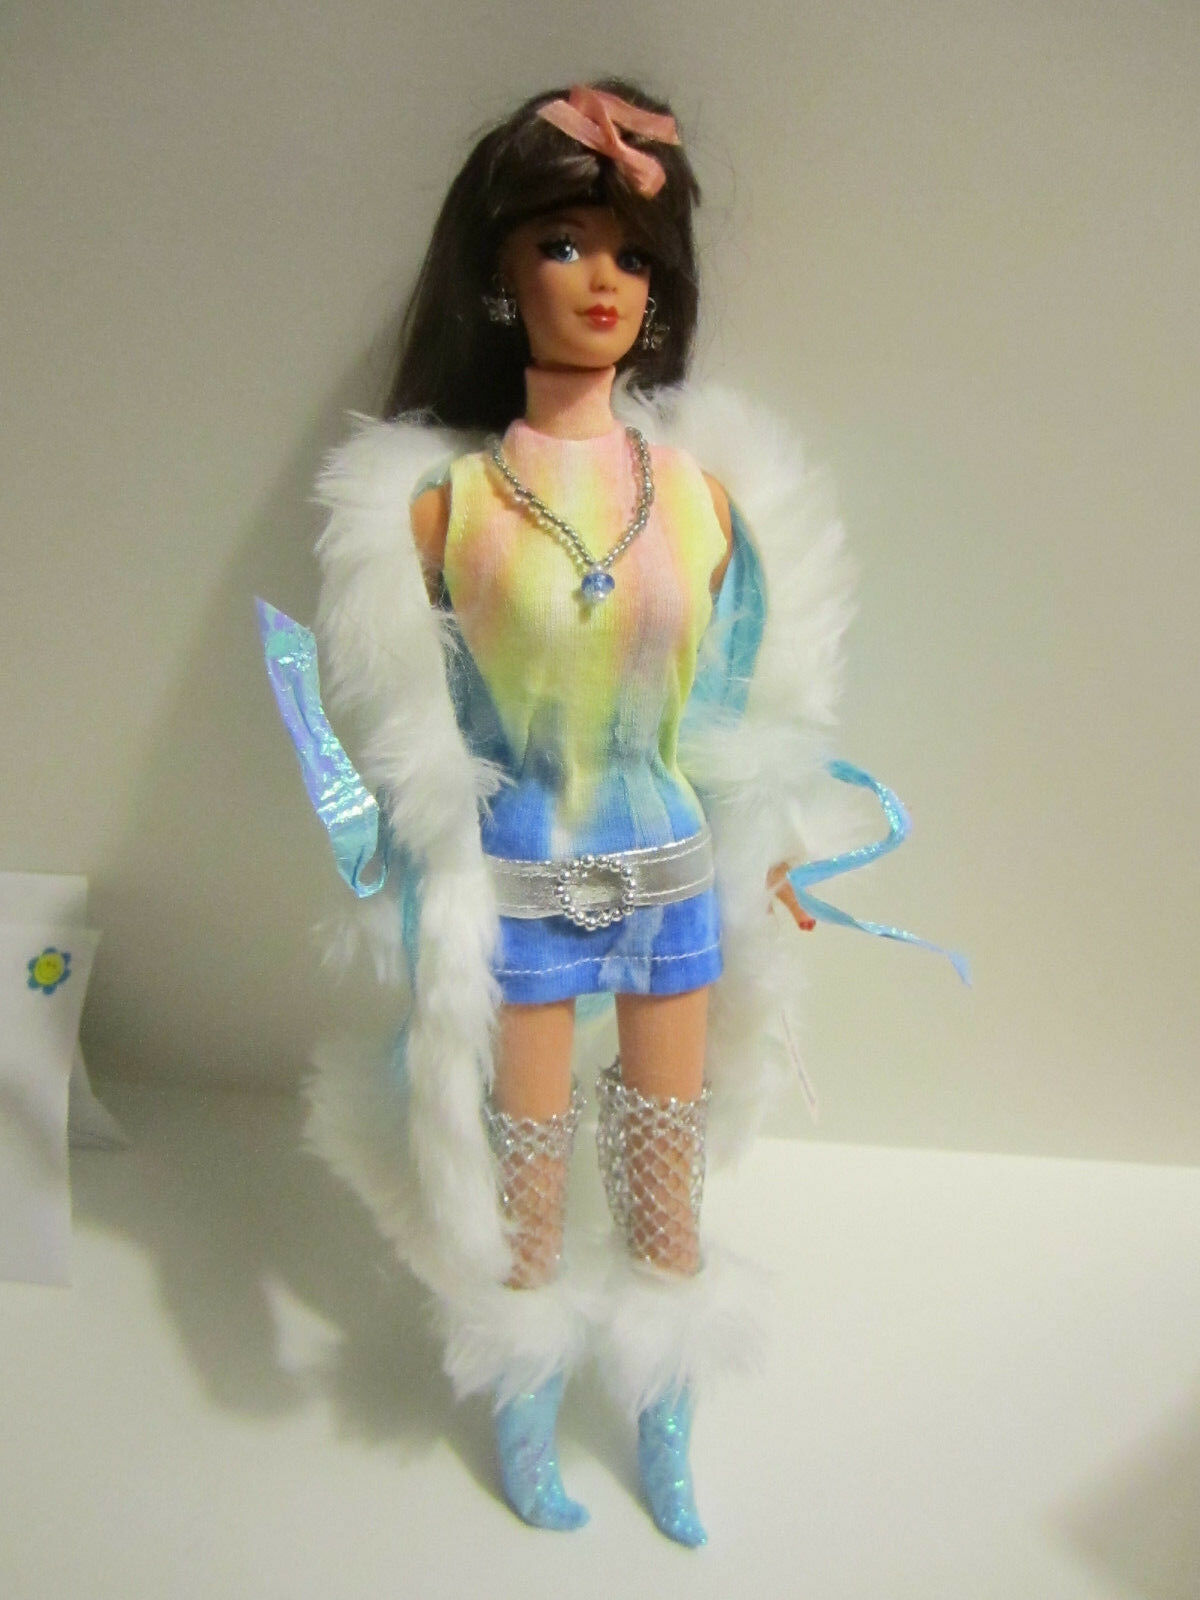 Collector Barbie Blue Mini Go Maxi OOAK by Angie Gill GILLYGALS image 6